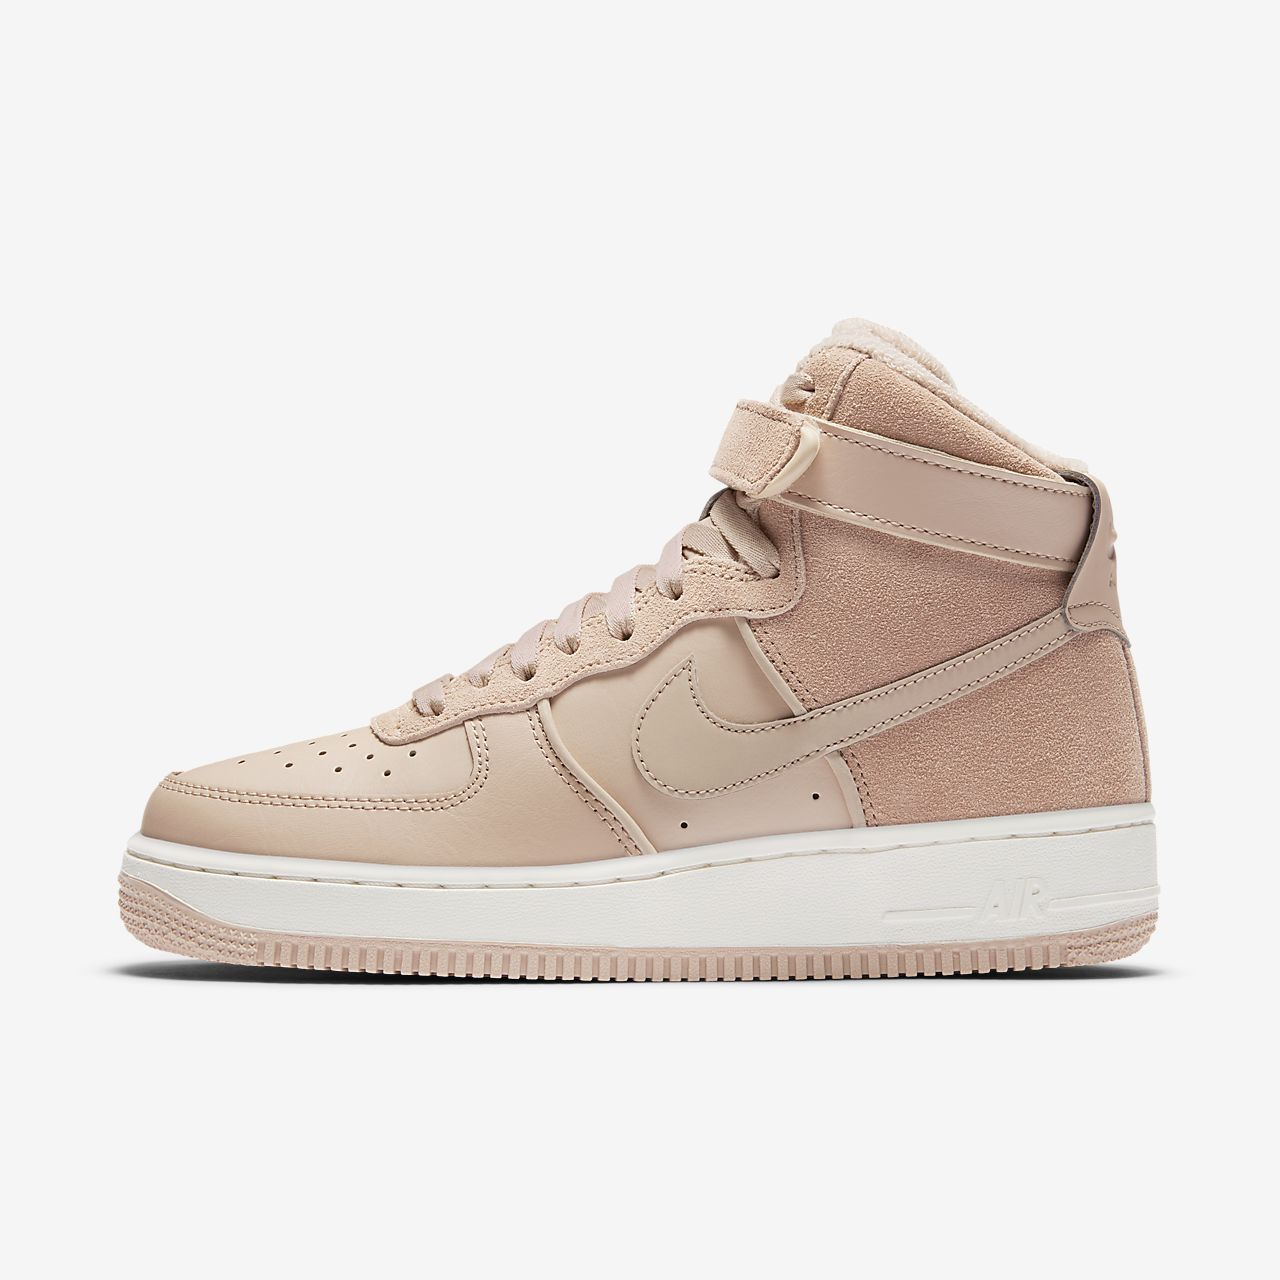 Nike Air Force 1 High Winterized Damenschuh